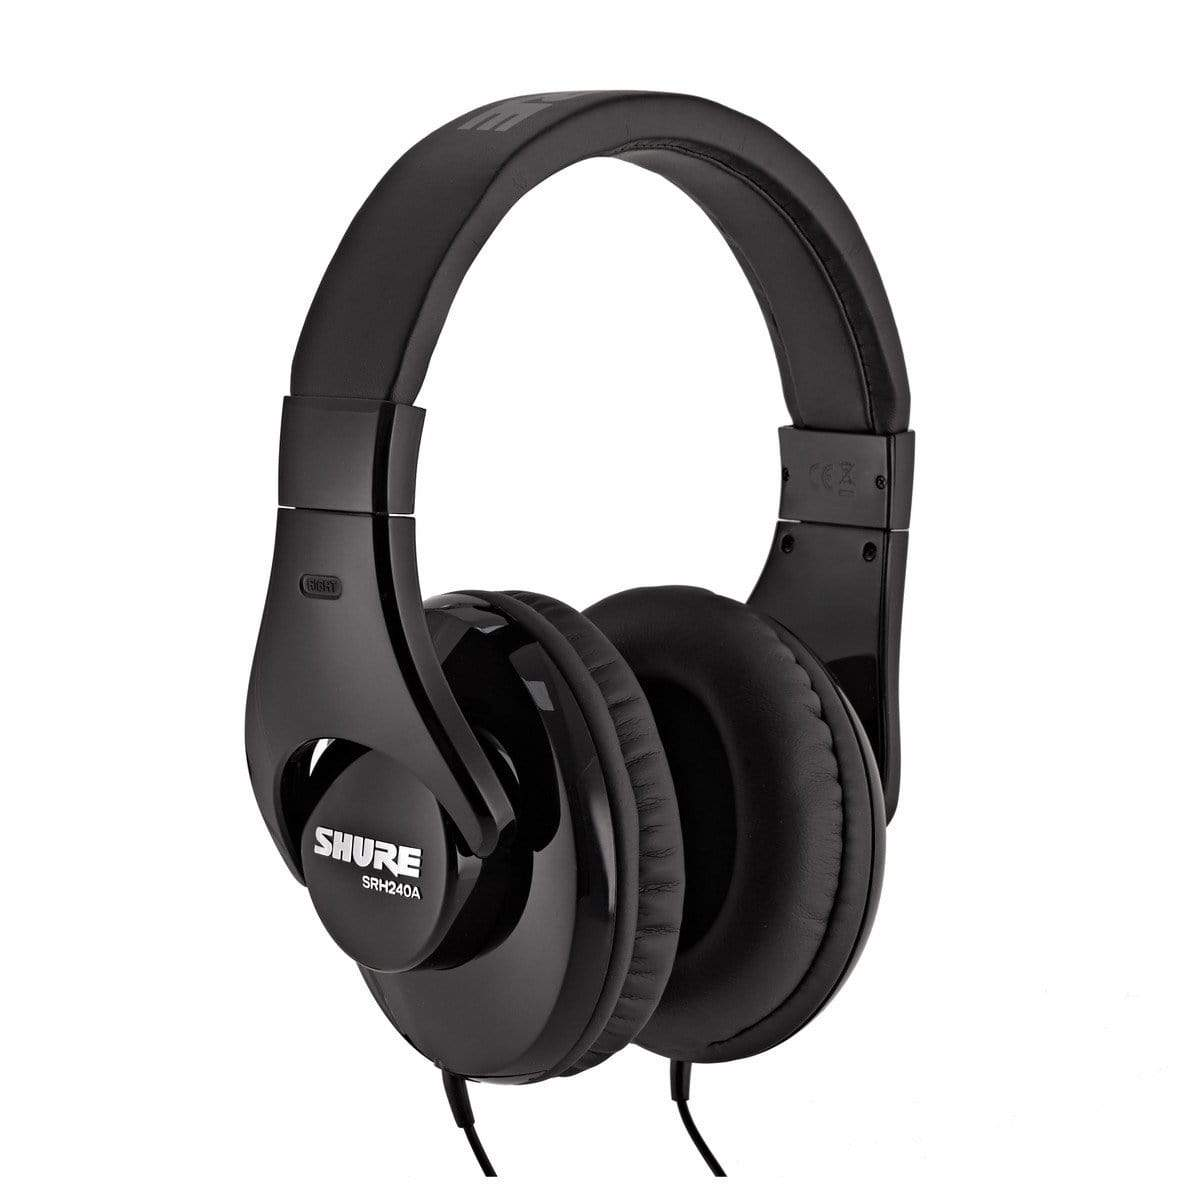 Shure Headphones Shure SRH240A Closed-back Headphones